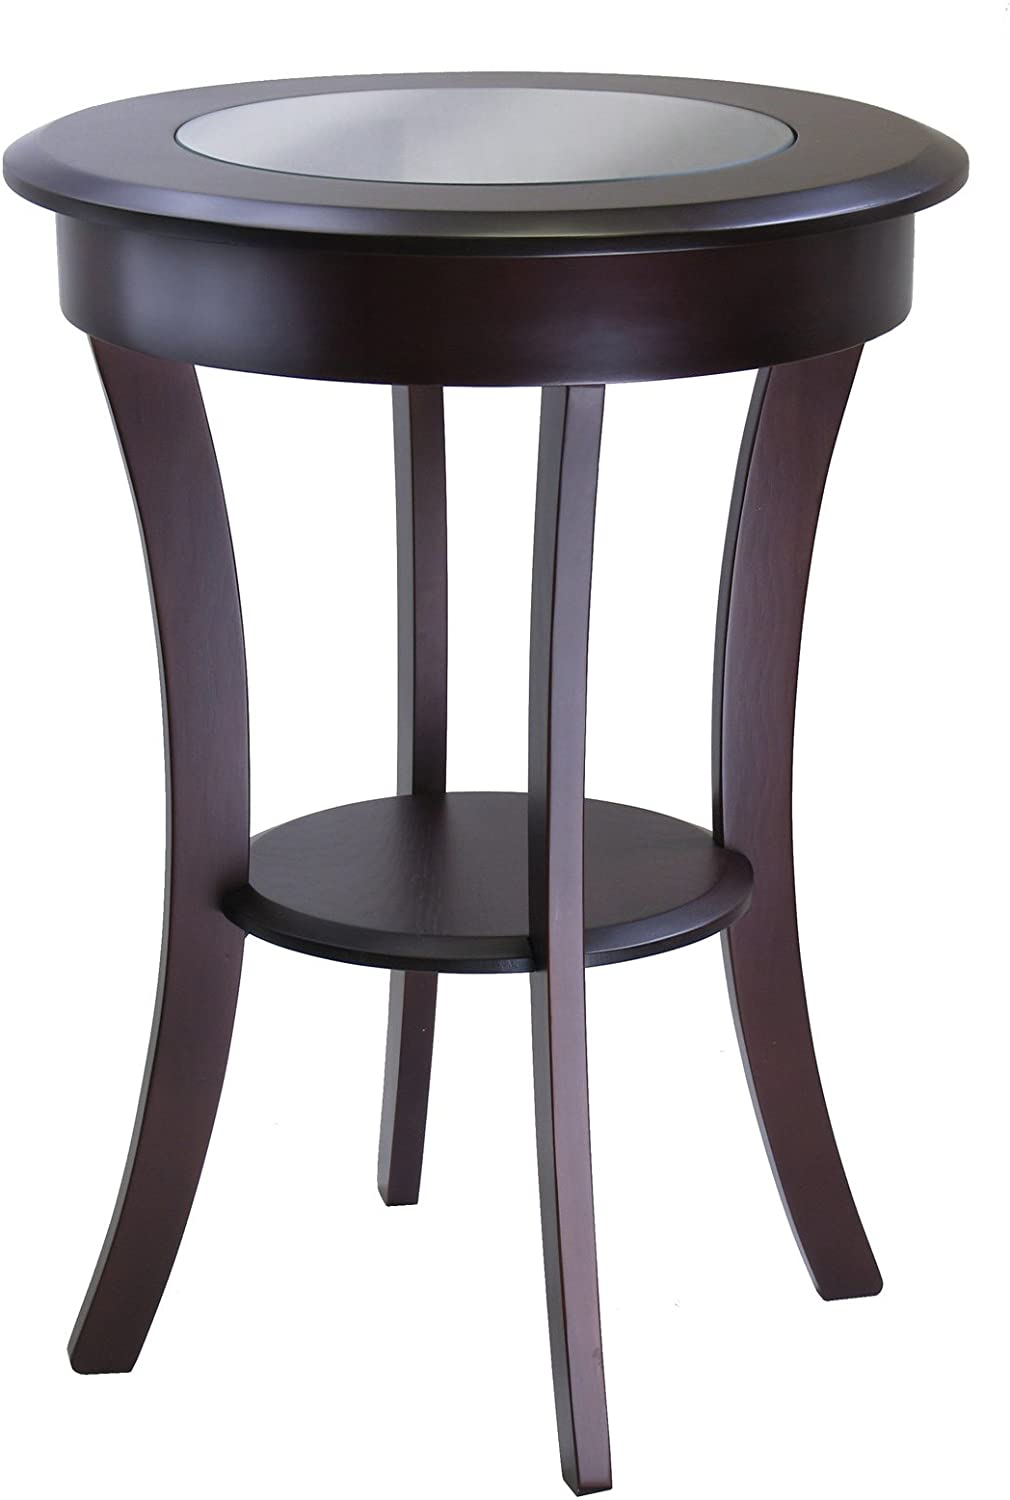 Cassie Round Accent Table With Glass - Pot Racks Plus